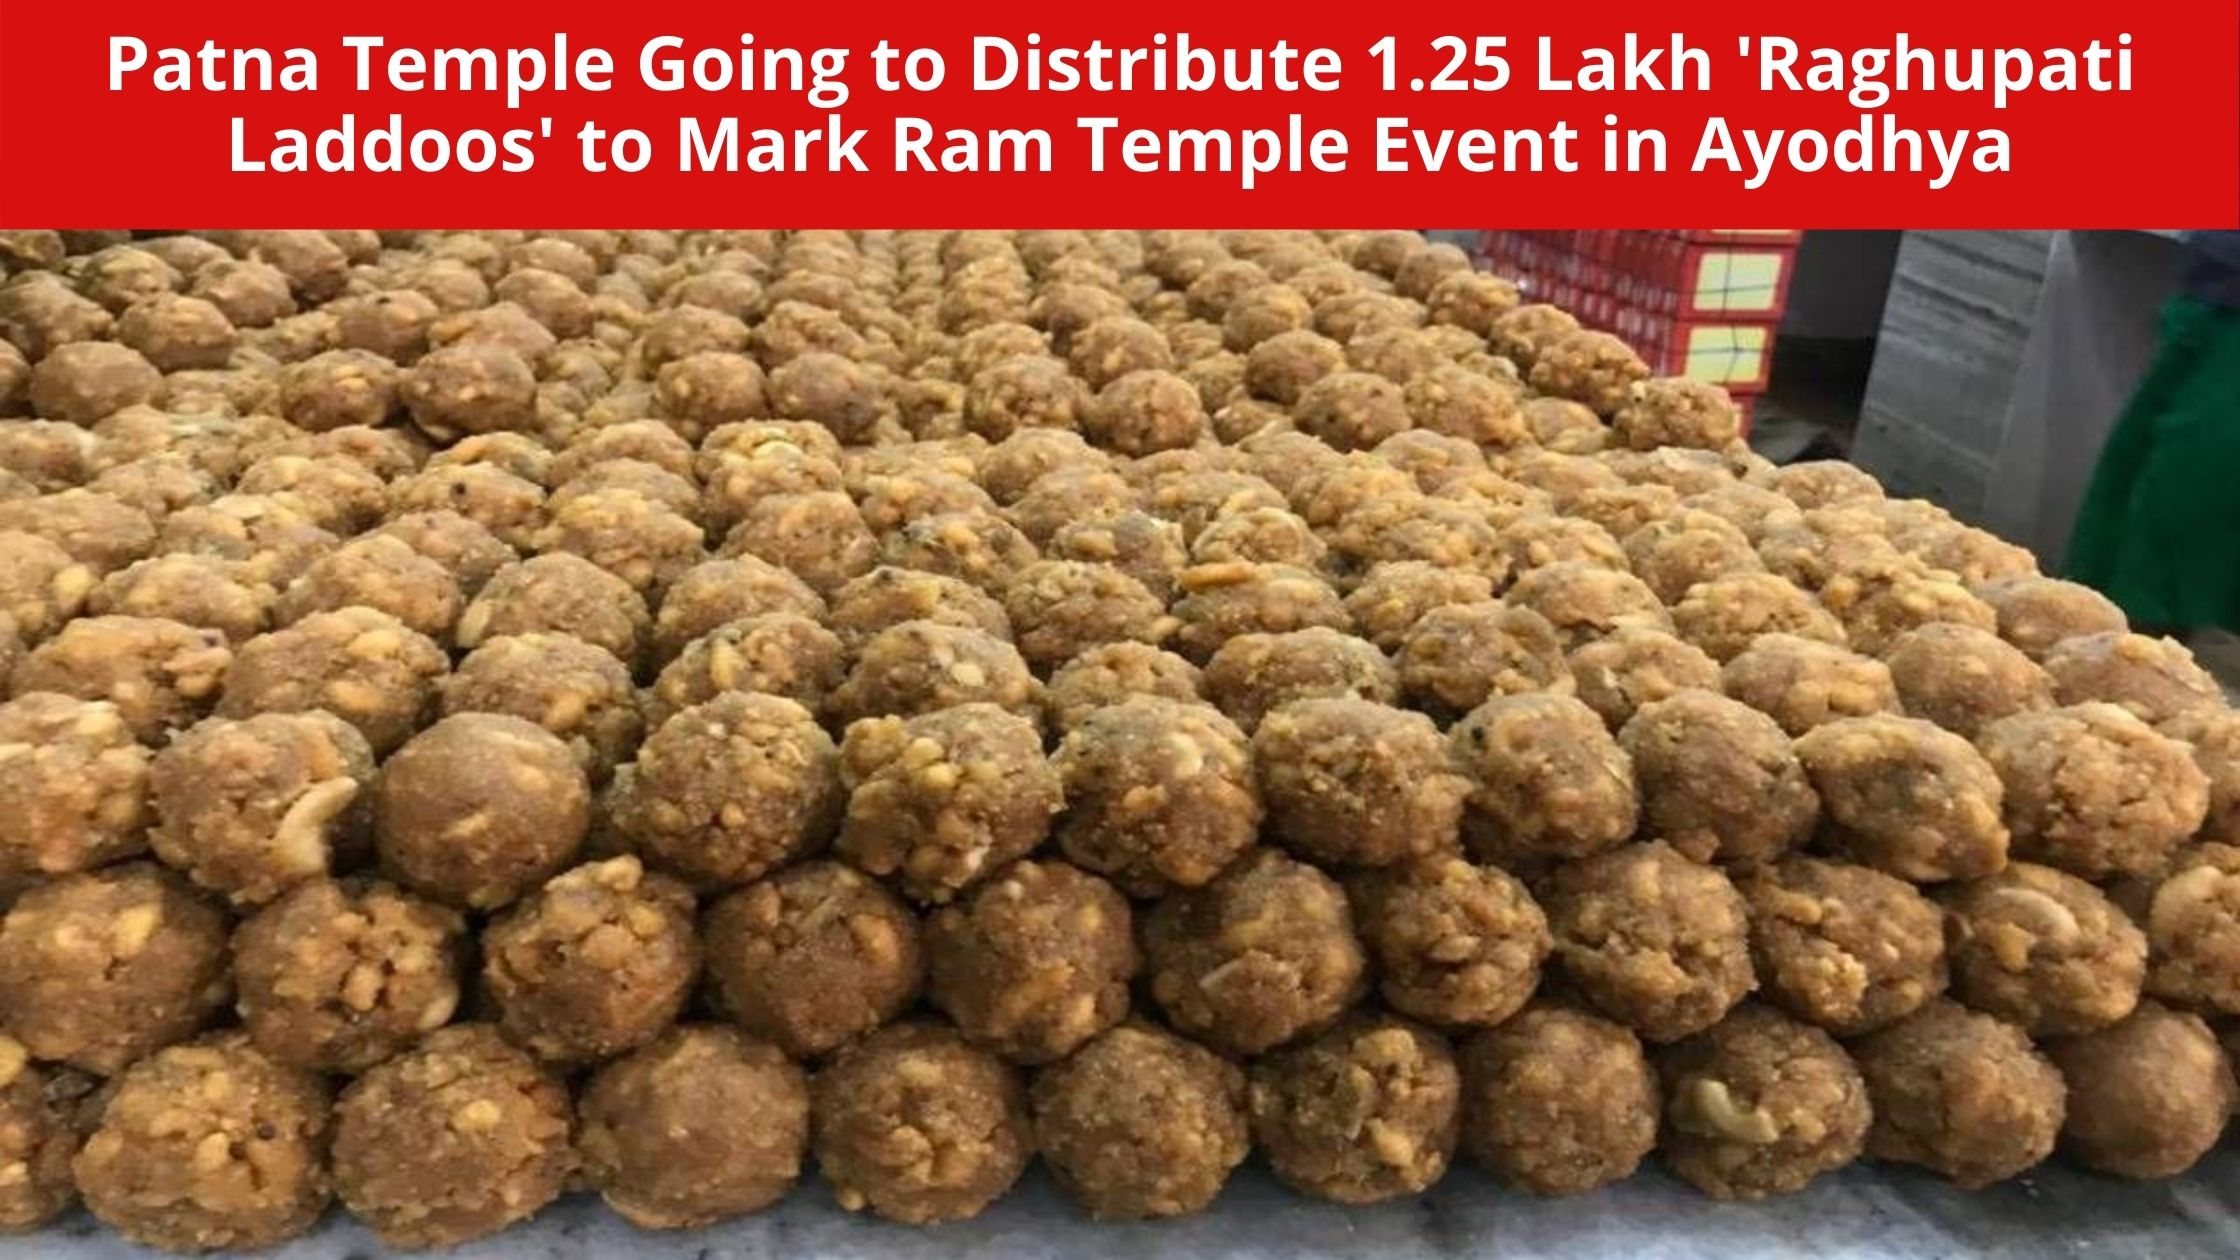 Patna Temple Going to Distribute 1.25 Lakh 'Raghupati Laddoos' to Mark Ram Temple Event in Ayodhya